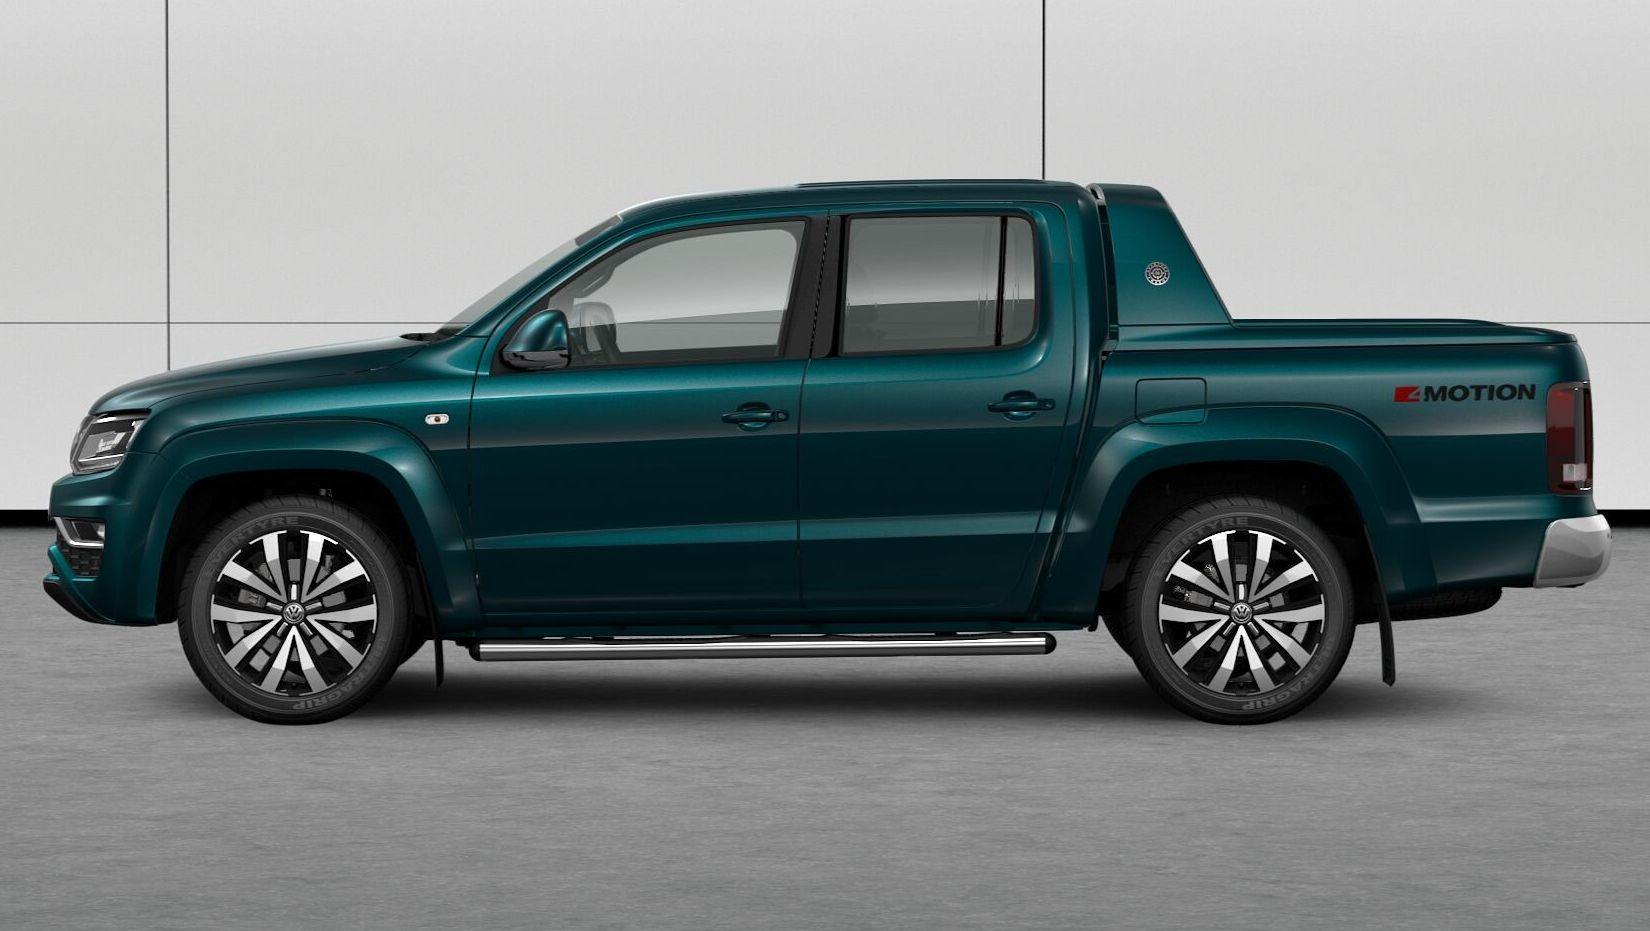 2018 Volkswagen Amarok Gets More Powerful 3.0 V6 TDI Engine - autoevolution